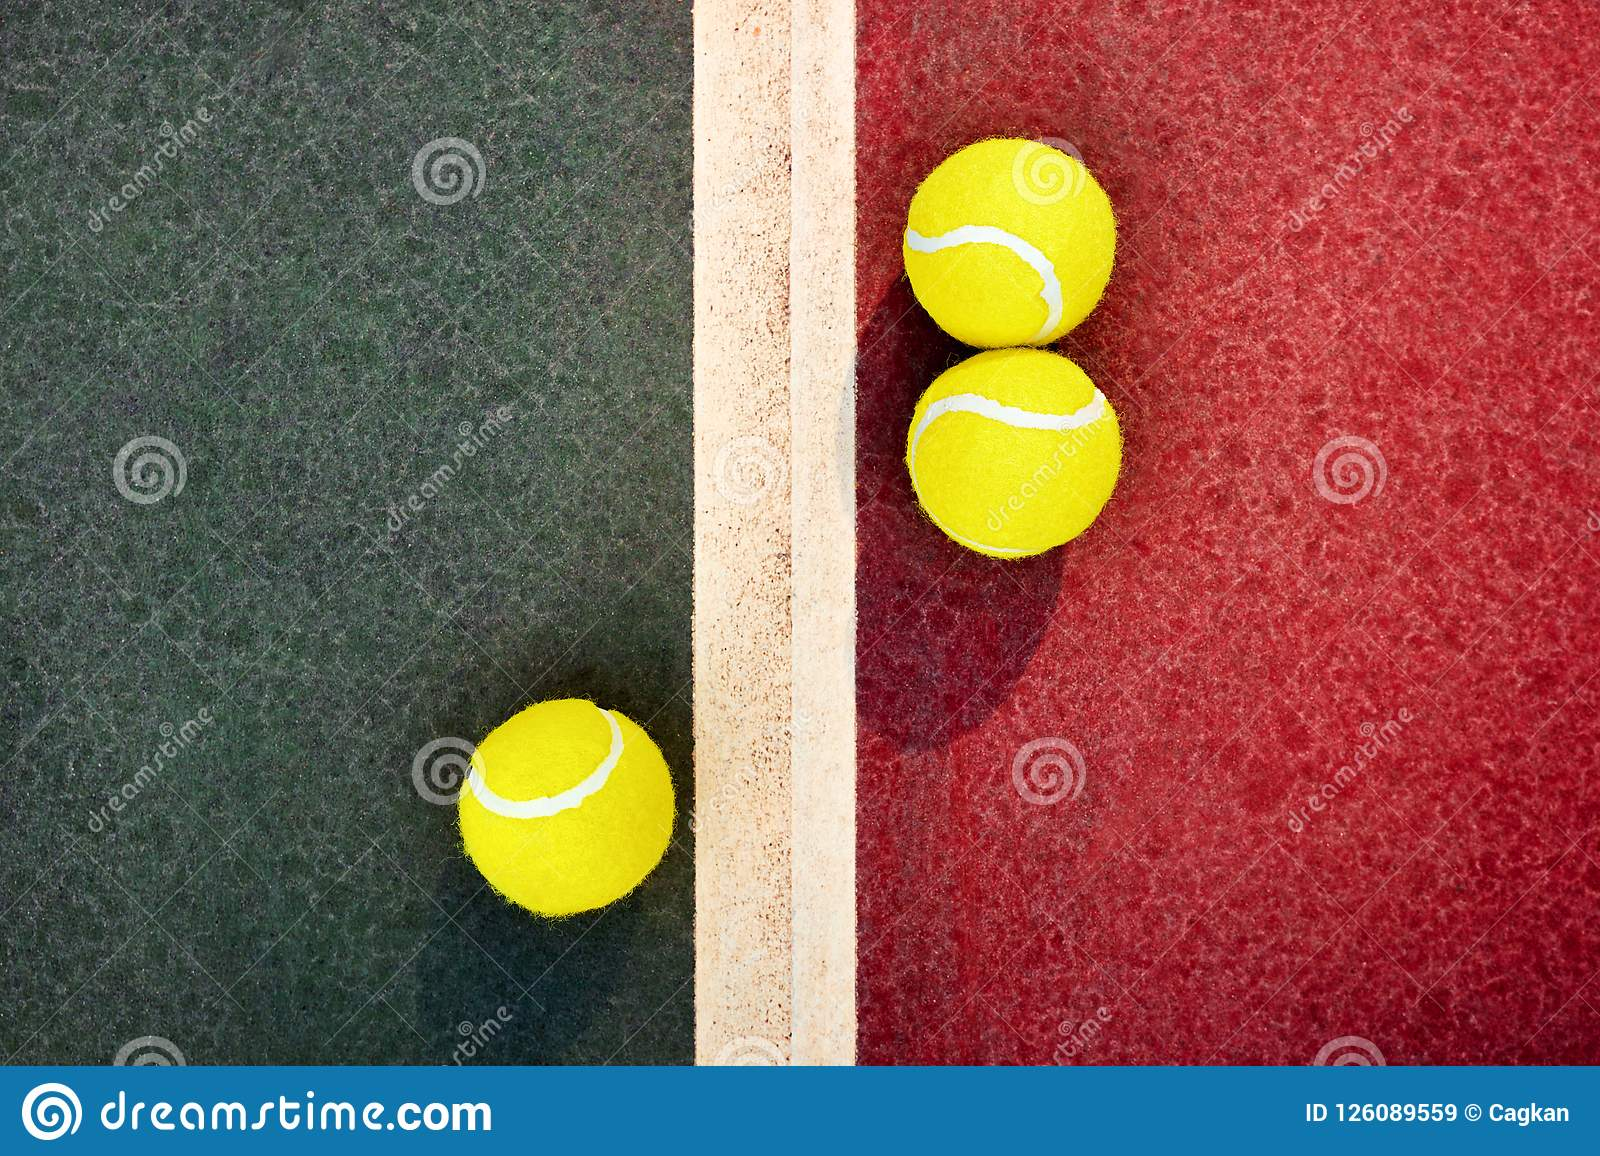 Three Yellow Tennis Balls Near The Line Of A Green Red Concrete